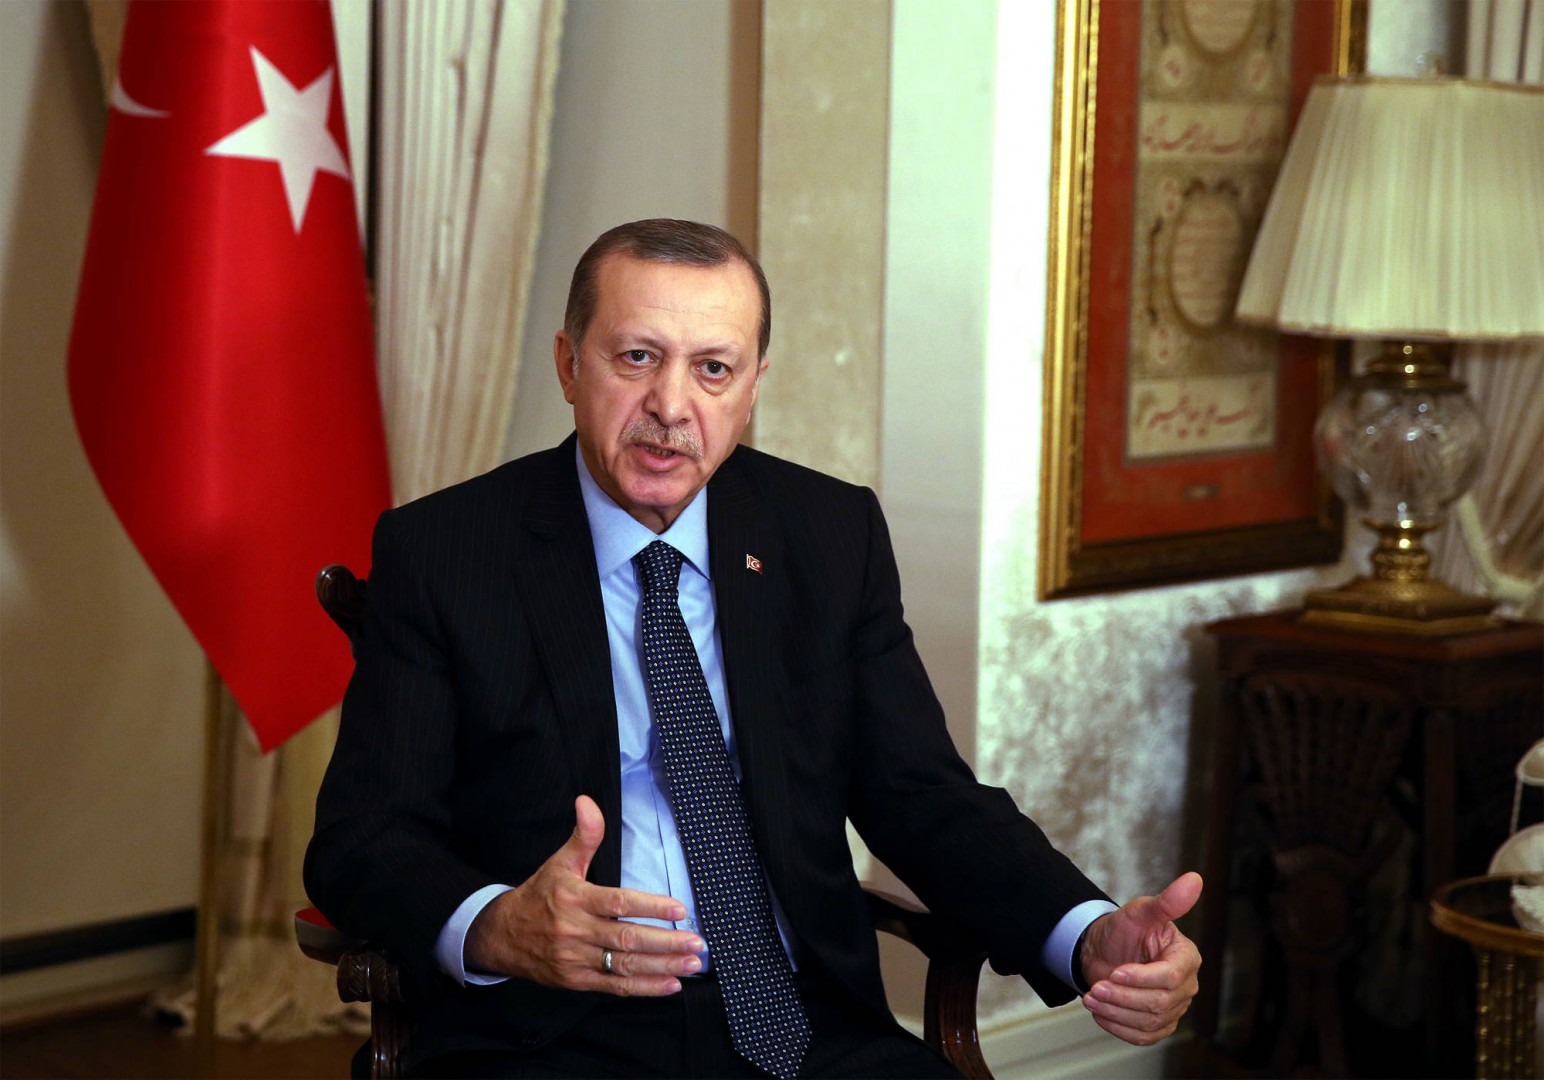 DECEMBER 19, 2016, ANKARA, TURKEY, TURKEY S PRESIDENT RECEP TAYYIP ERDOGAN, TALKS REGARDING THE RUSSIAN AMBASSADOR ANDREI KARLOV S ASSASSINATION EARLIER MONDAY, AT THE PRESIDENTIAL PALACE IN ANKARA, TURKEY, MONDAY, DEC. 19, 2016. (CREDIT IMAGE: (C) PRENSA INTERNACIONAL VIA ZUMA WIRE) RECEP, TAYYIP, ERDOGAN, TURKEY, RUSSIA, AMBASSADOR, ZUMAPRESS.COM, THEPICTURESOFTHEDAY.COM, ZSELECT, ZAGENCY, Z_161220_004POOLPI3659.JPG, ZWIRE, ZLAST24, 20161219_ZAA_P124_007.JPG, 20161219_ZAA_P124_007.JPG